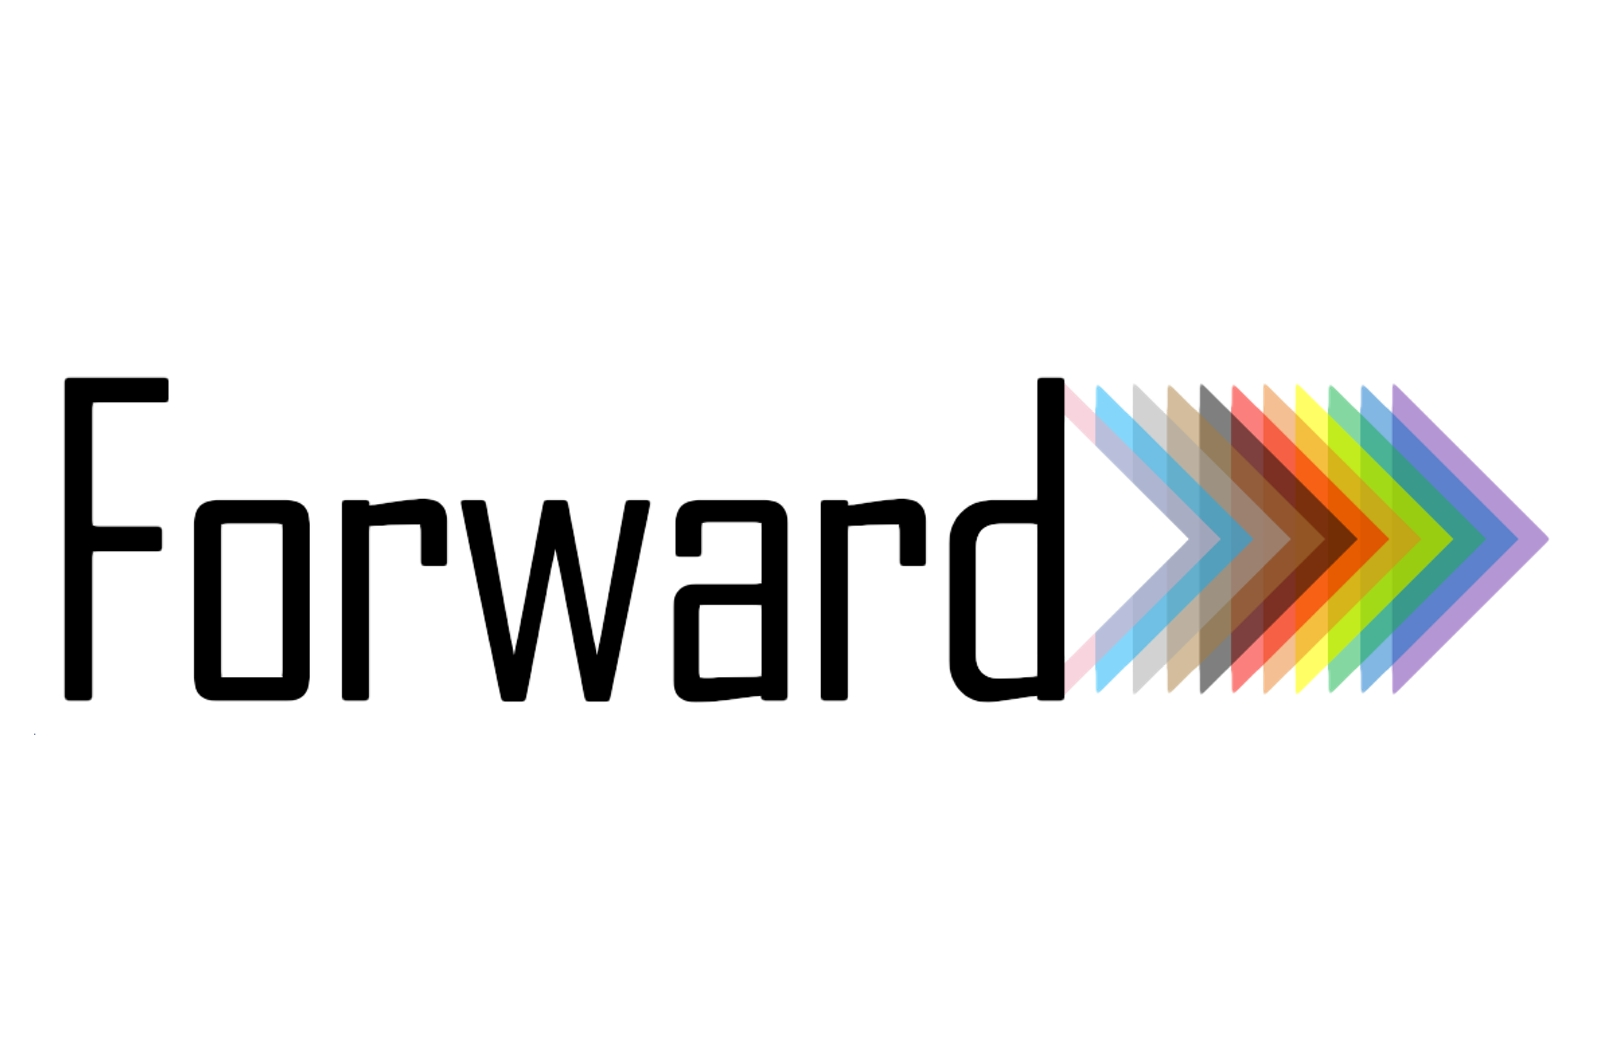 Forward Chevron Image